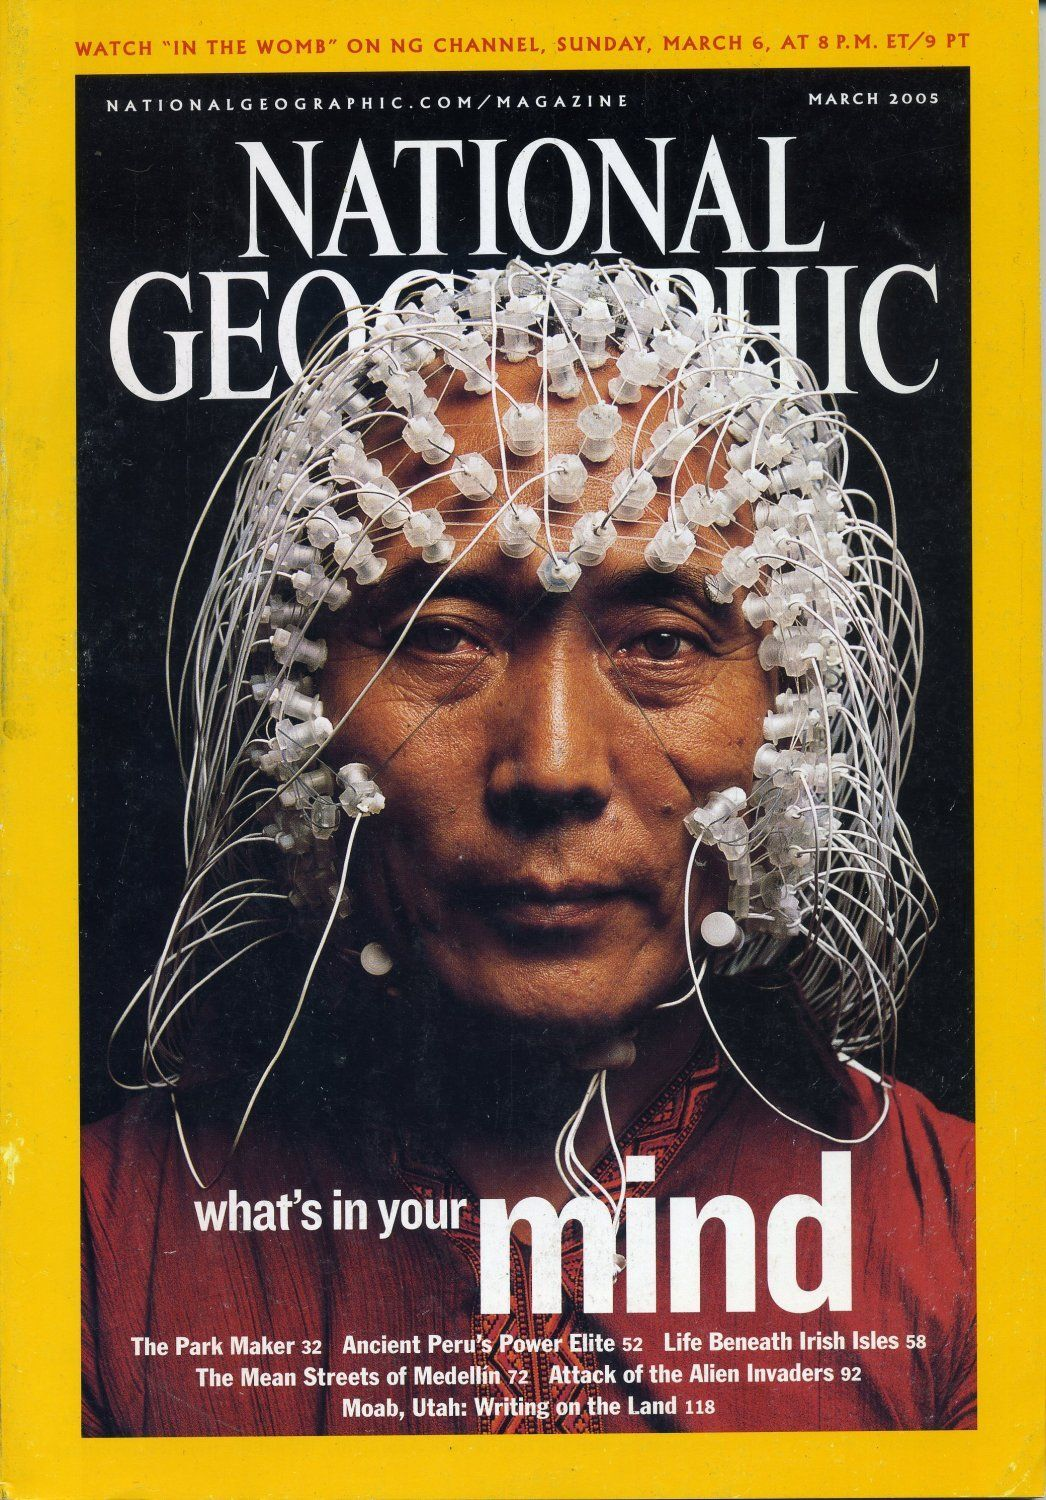 NATIONAL GEOGRAPHIC MONK